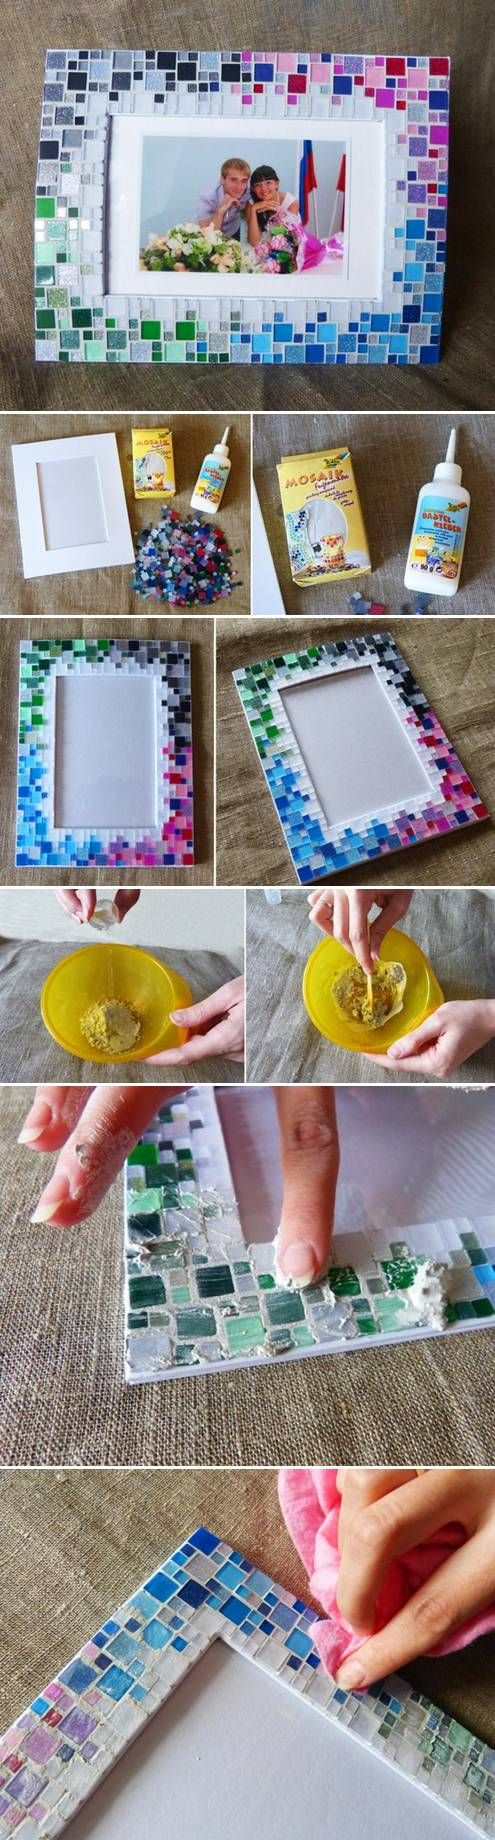 Colorful Mosaic Picture Collage Photoframe DIY - #diy